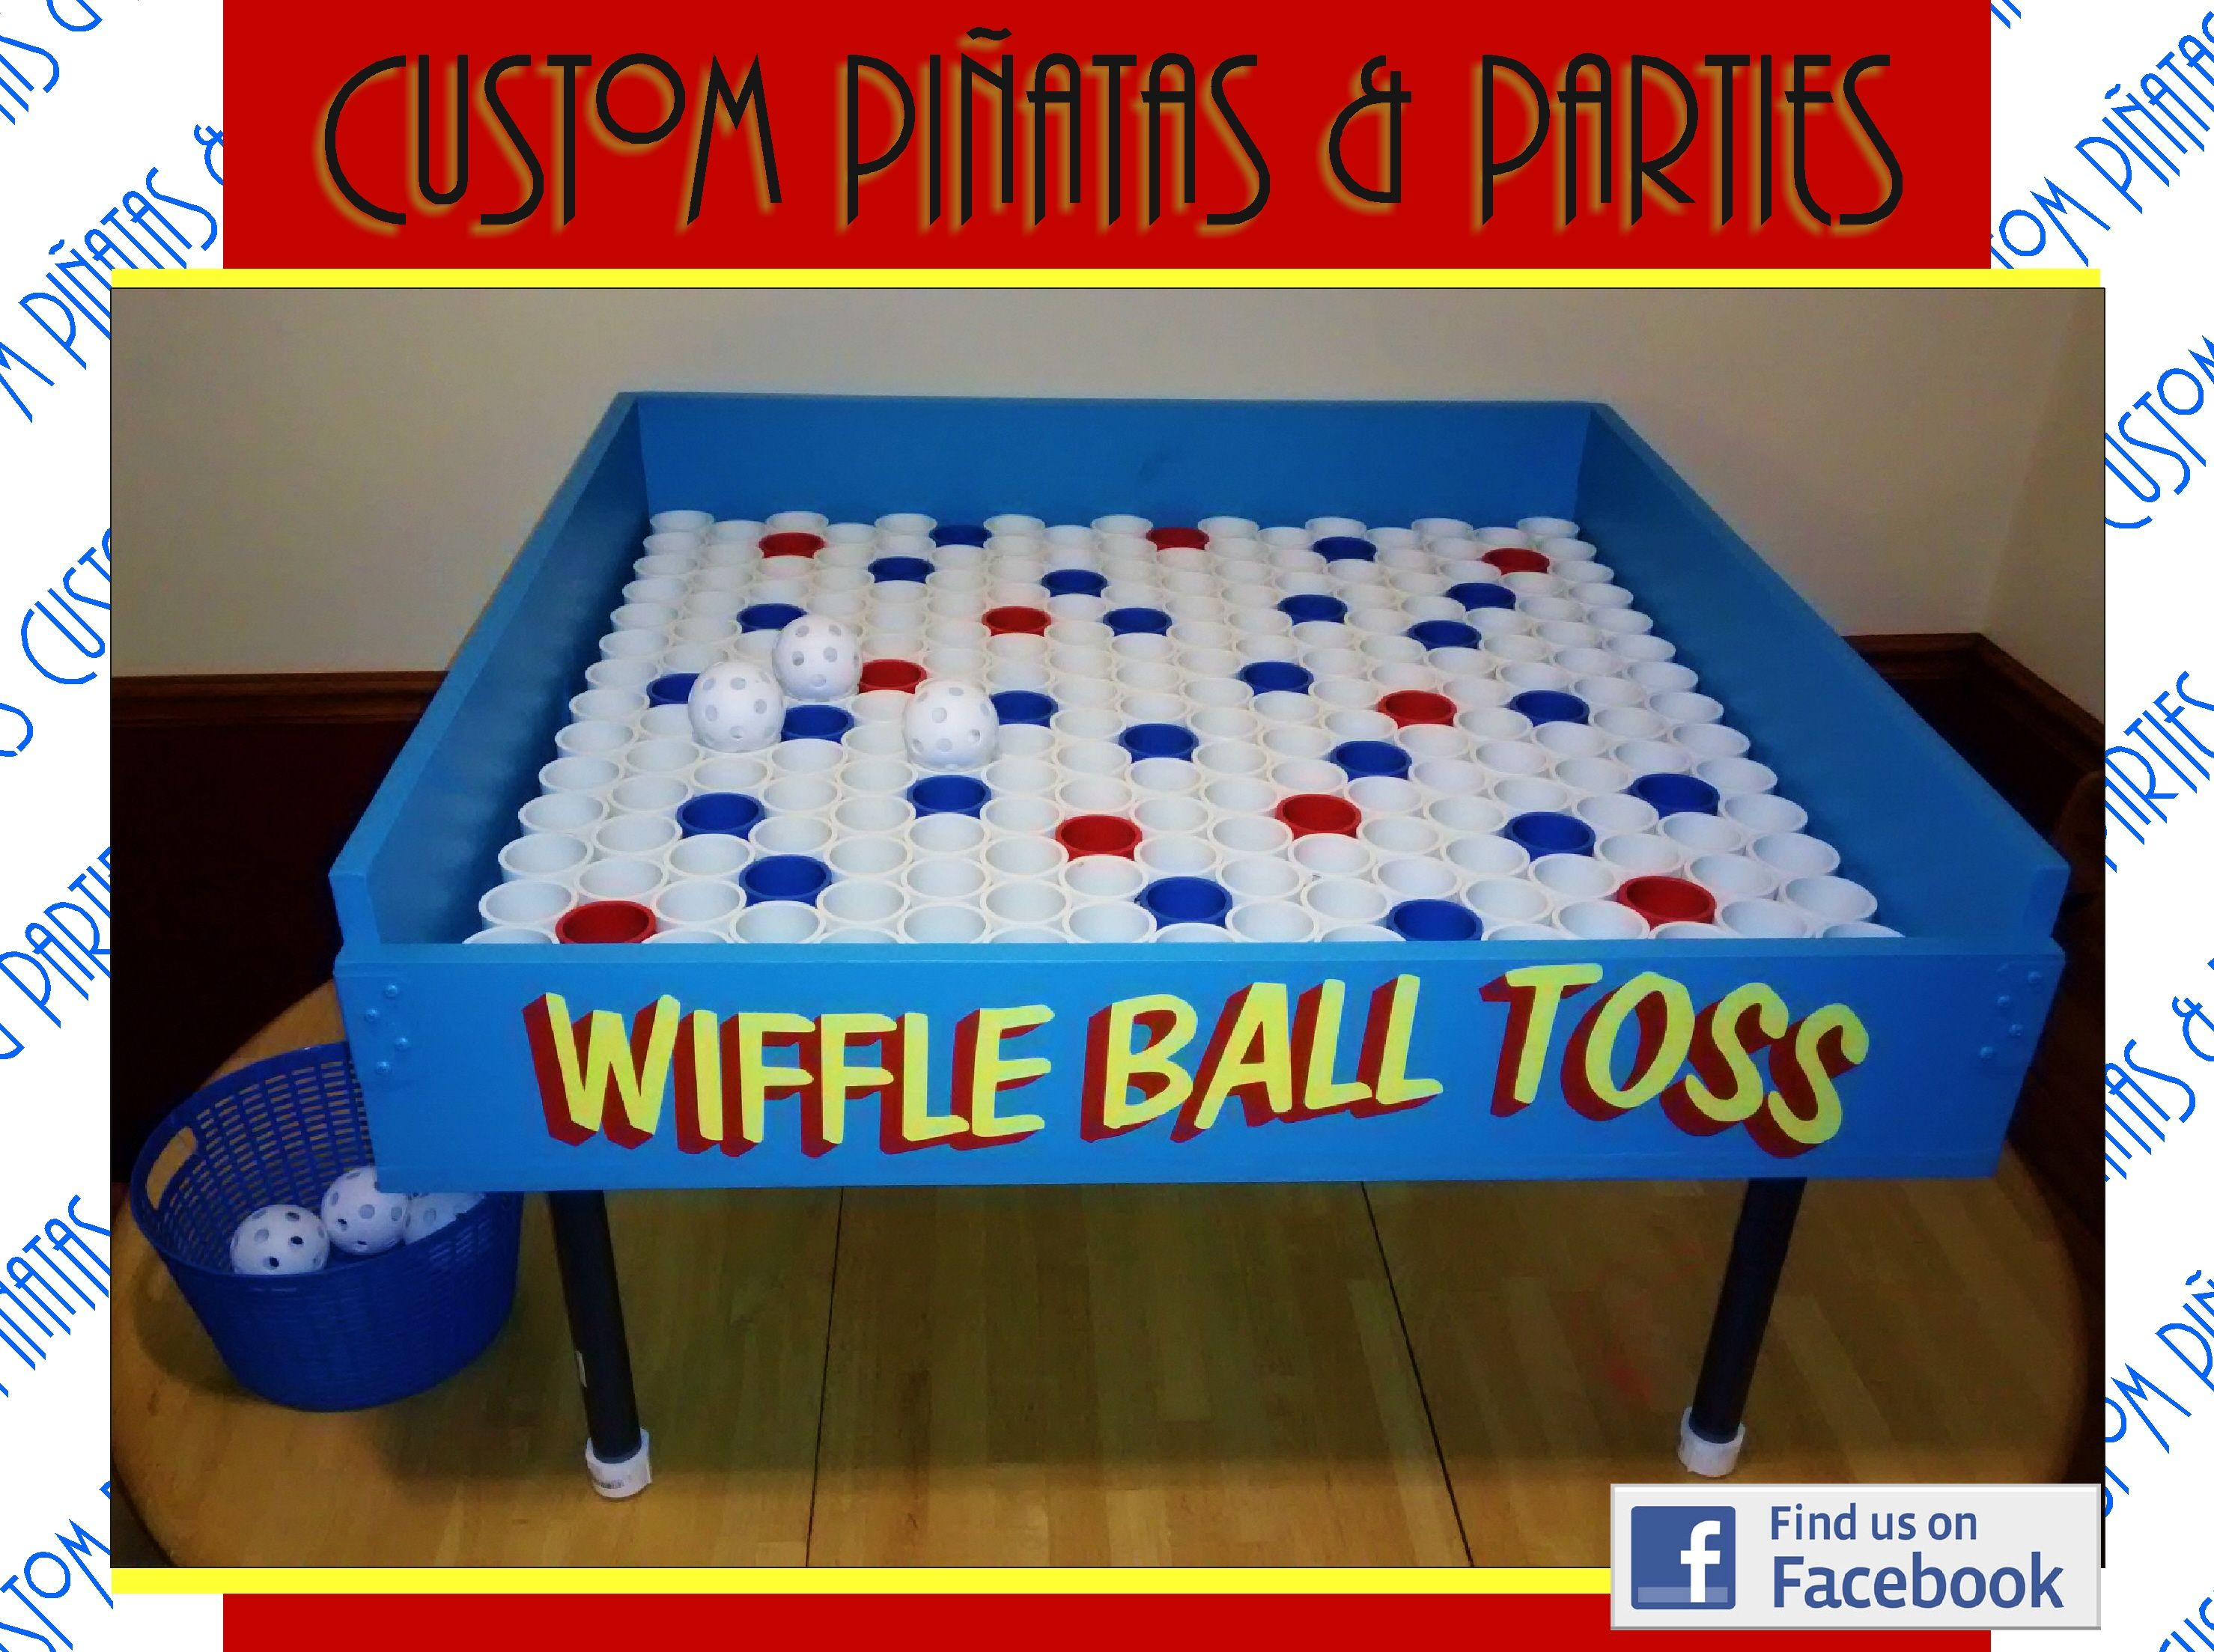 wiffle ball toss carnival style party game rental party game